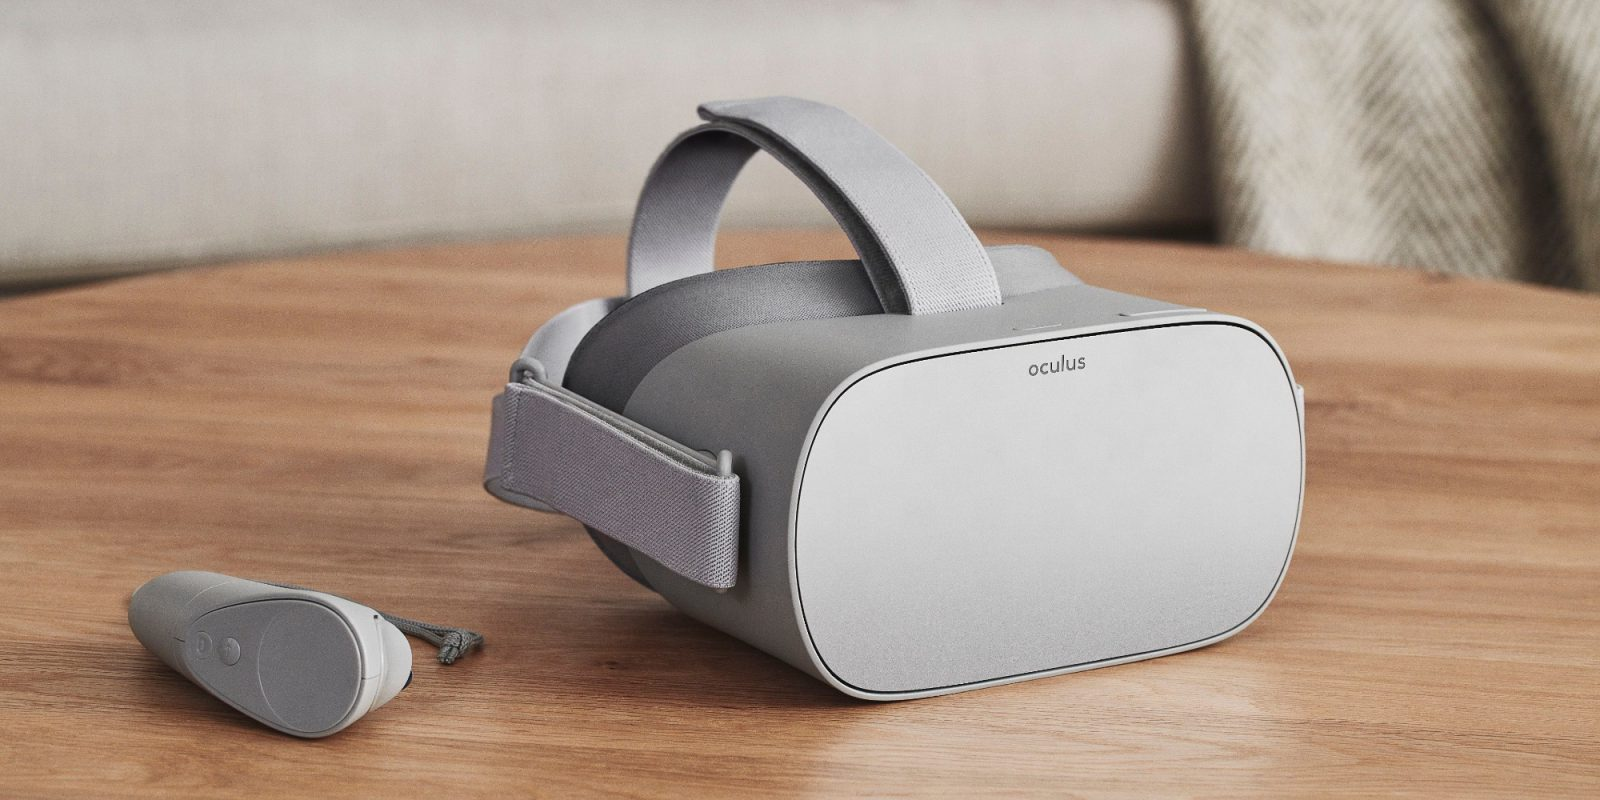 VR awaits with a new all-time low on the Oculus Go Headset at $149 ($50 off)